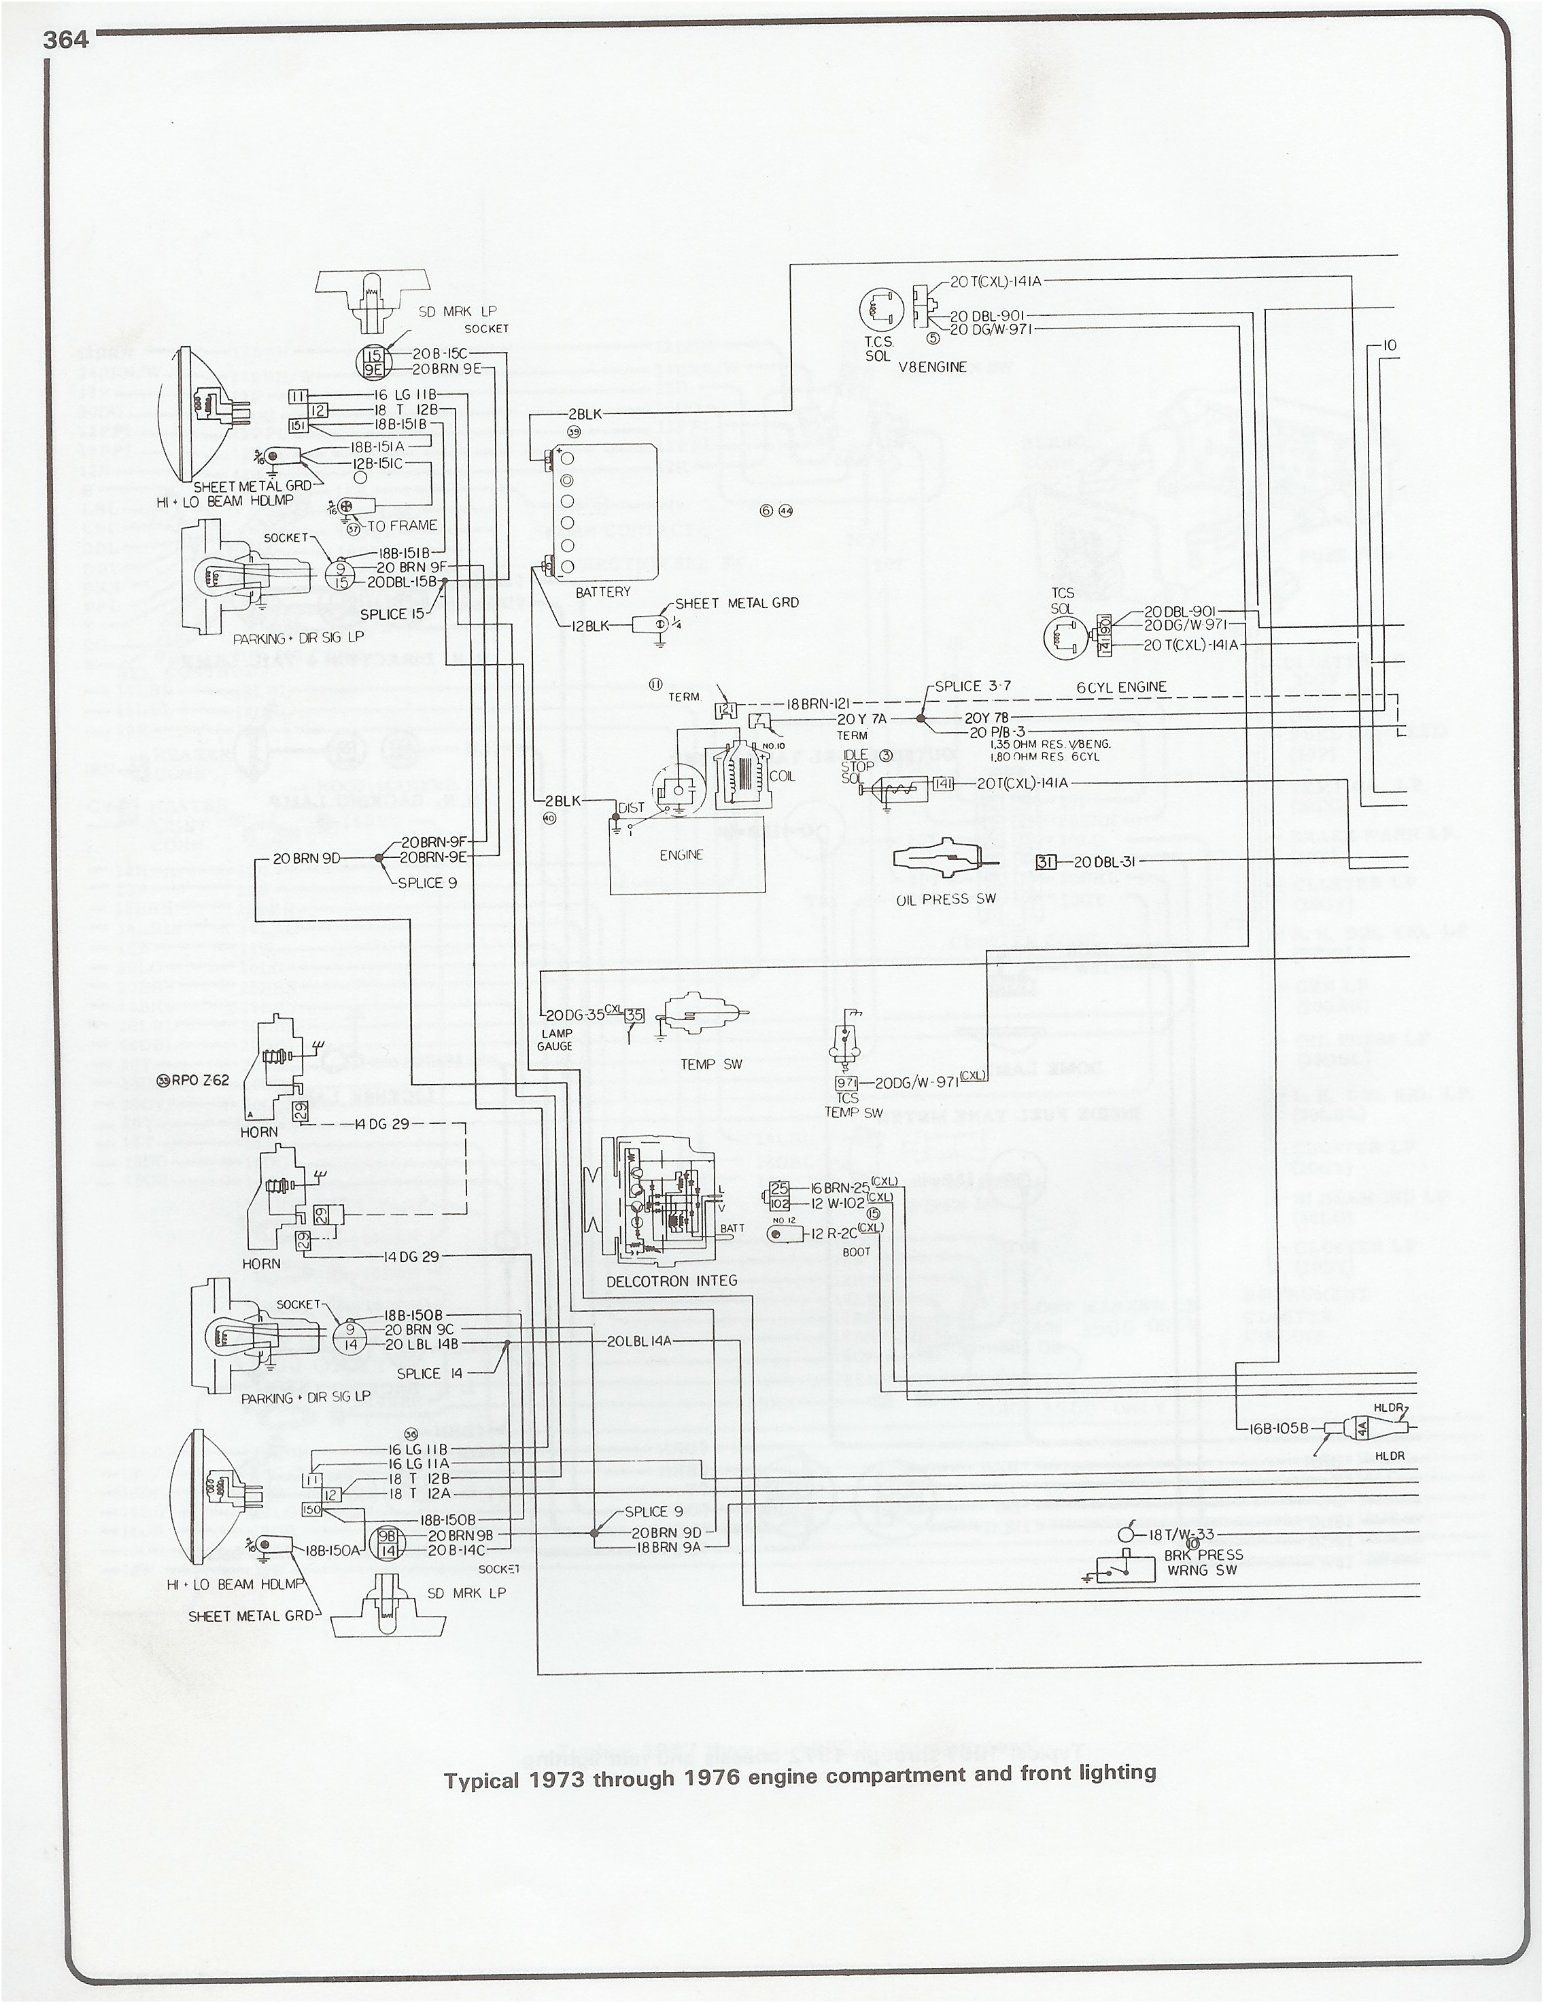 1977 chevy c10 alternator wiring wiring diagram expert 77 chevy truck alternator wiring 1976 chevy c10 [ 1544 x 2003 Pixel ]